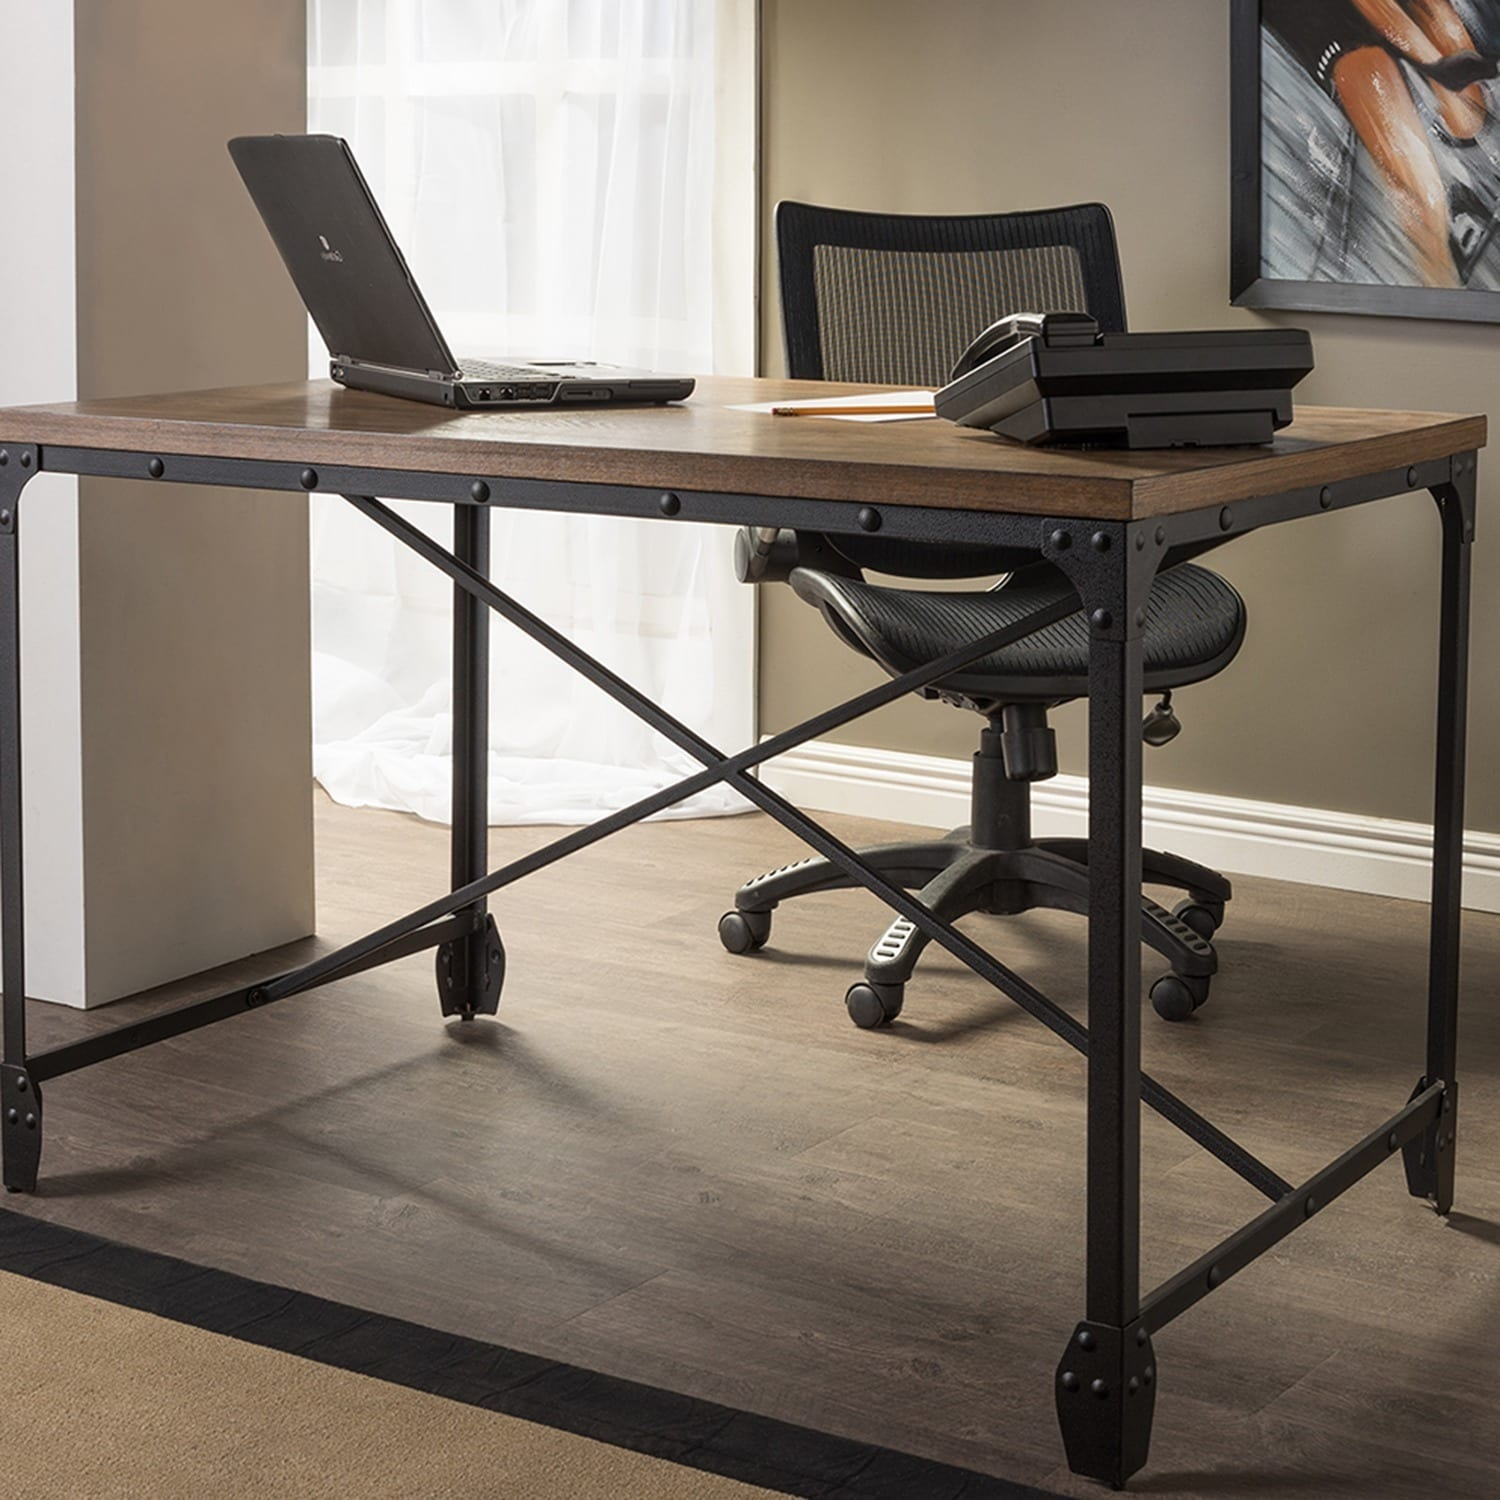 Carbon Loft Edelman Antique Bronze Wood/Metal Home Office Desk - Shop Carbon Loft Edelman Antique Bronze Wood/Metal Home Office Desk